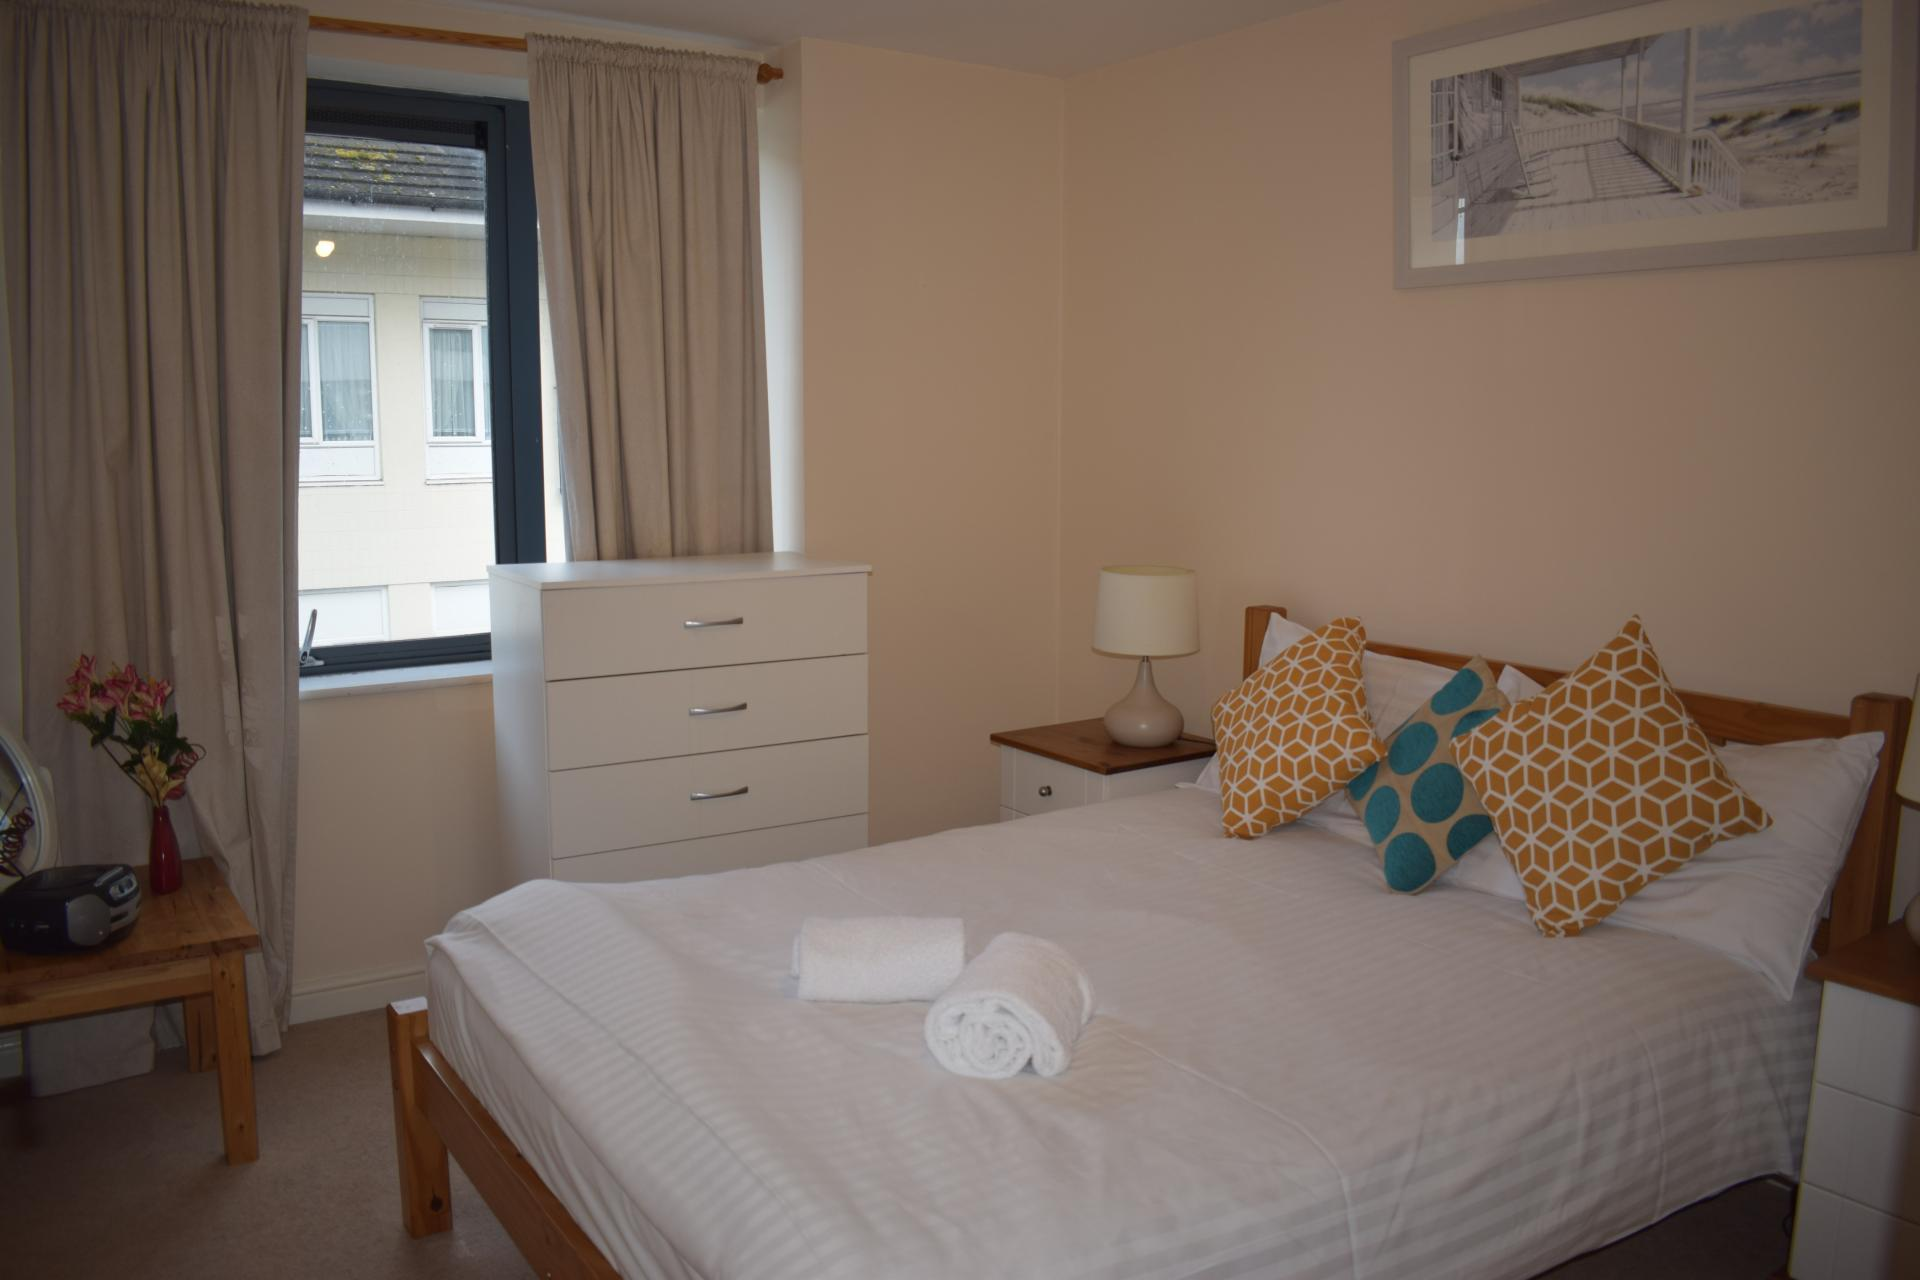 Bed at Queensgate Apartments, Centre, Watford